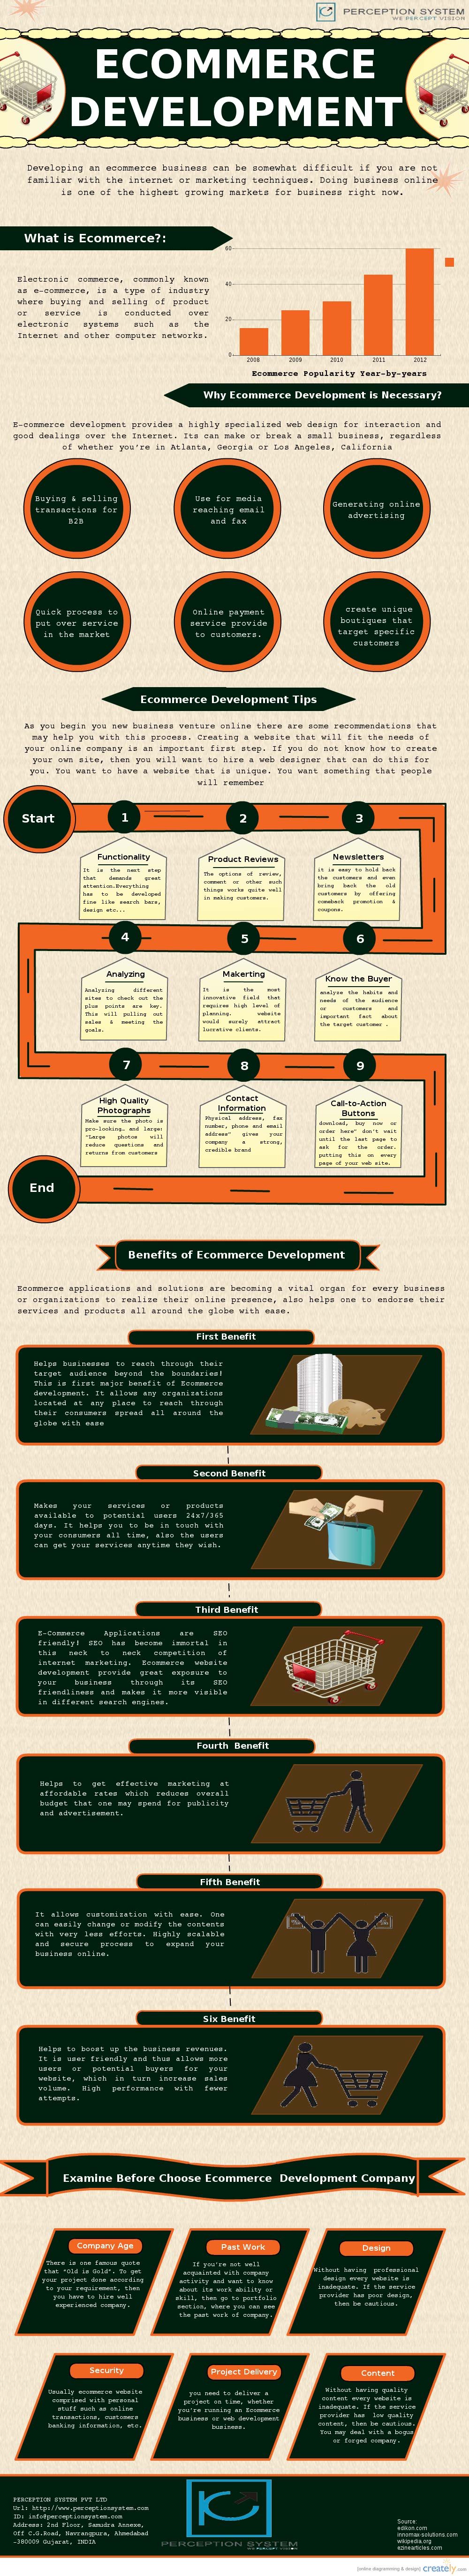 e Commerce Kickstart-Infographic